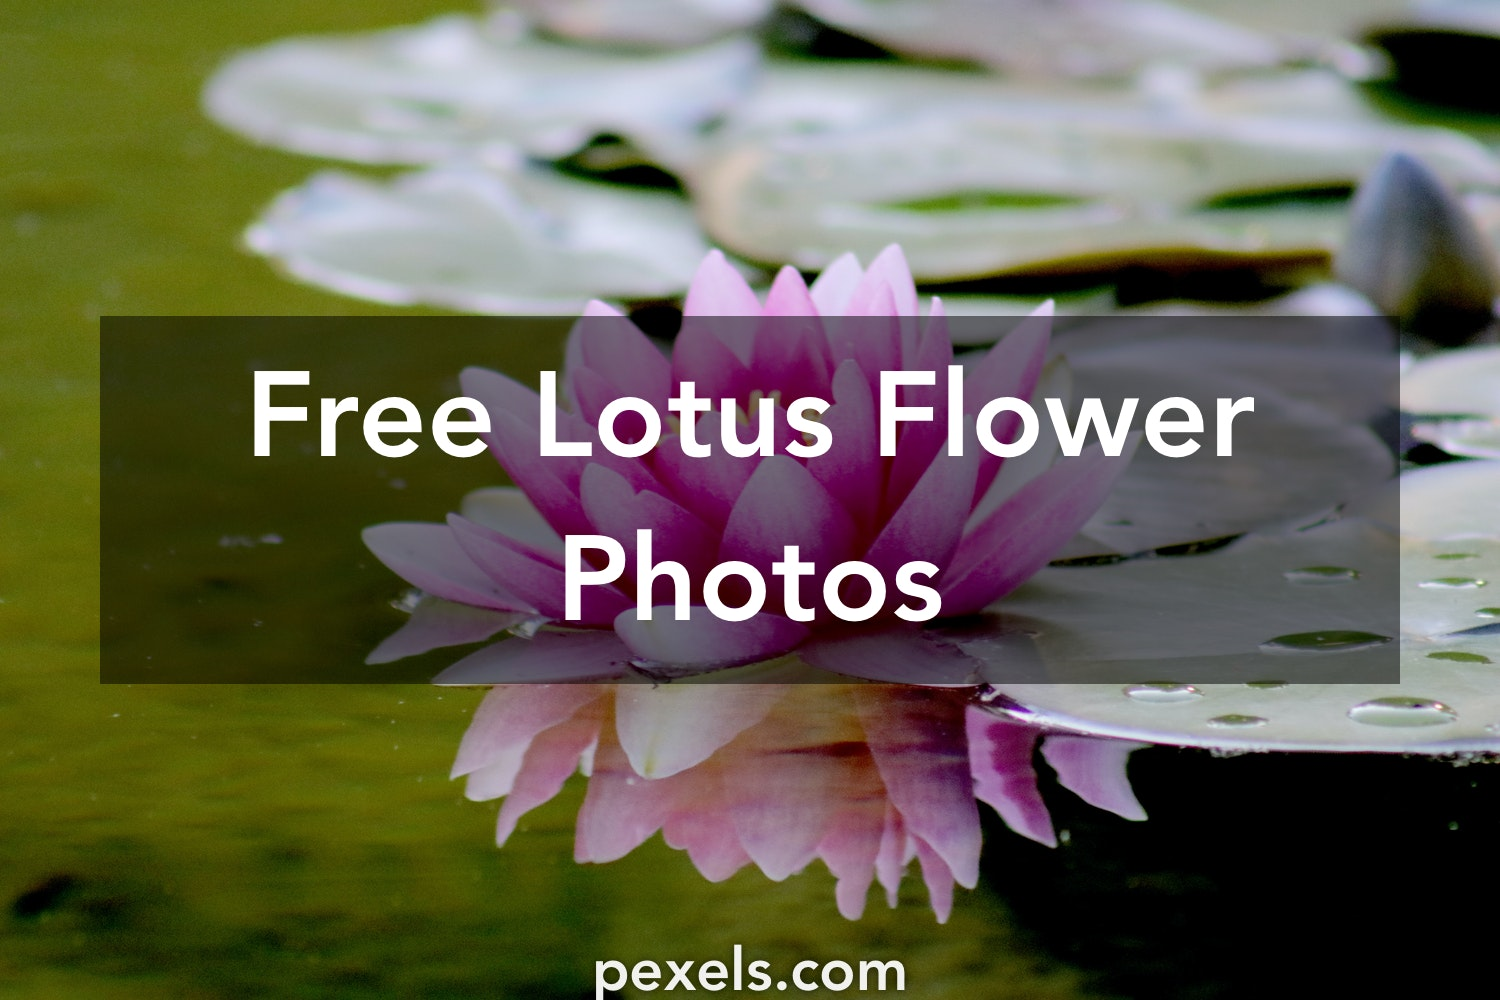 Free stock photos of lotus flower pexels mightylinksfo Image collections